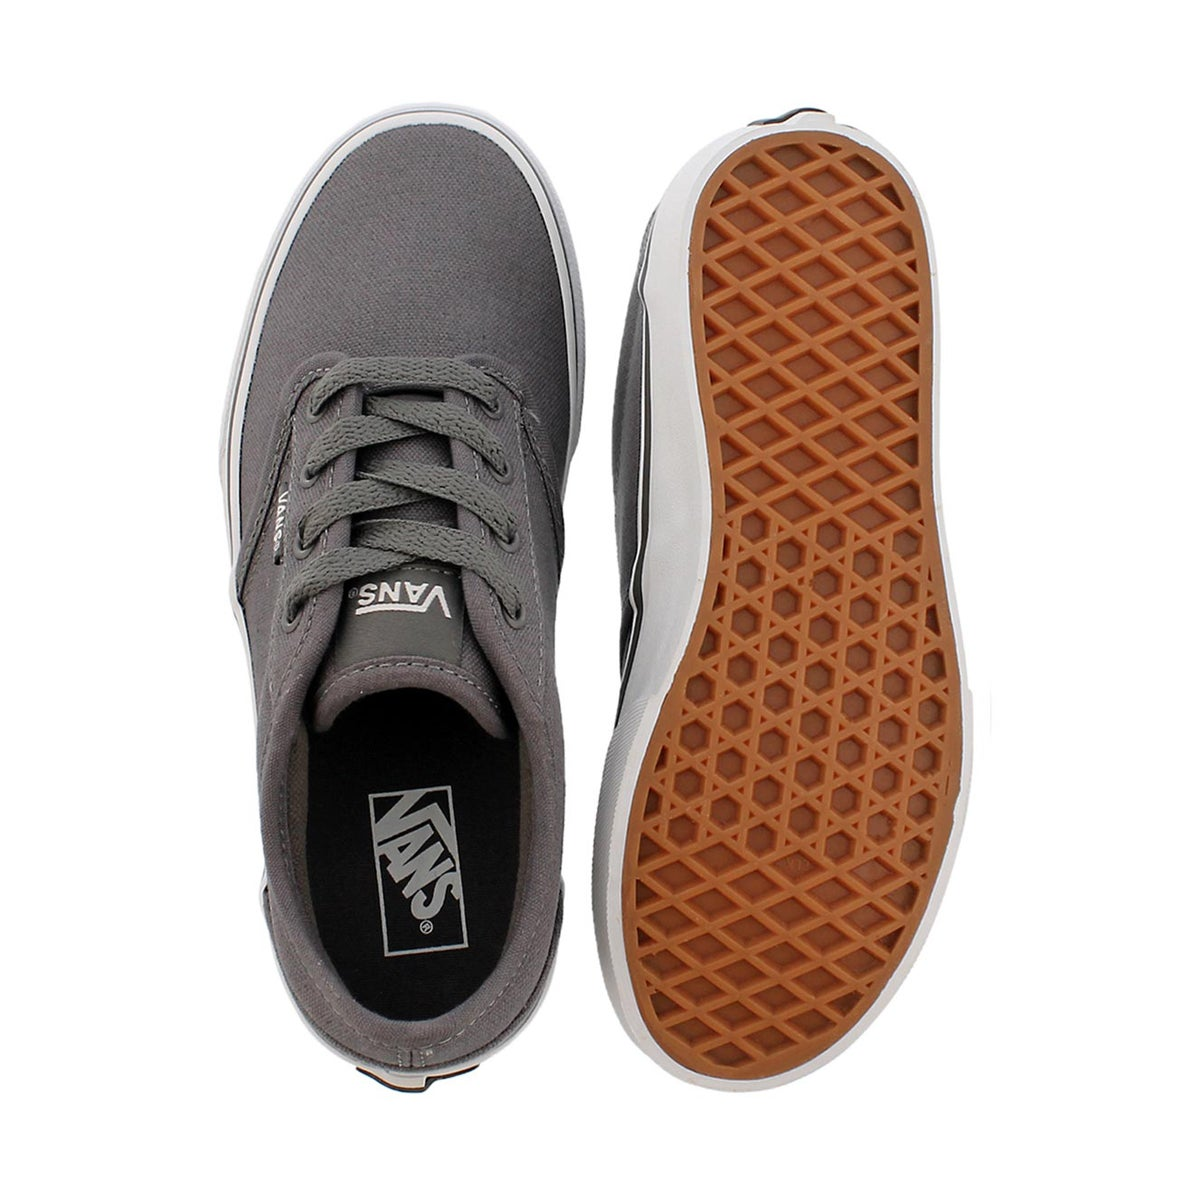 Bys Atwood pwtr/wht cnvs lace up sneaker